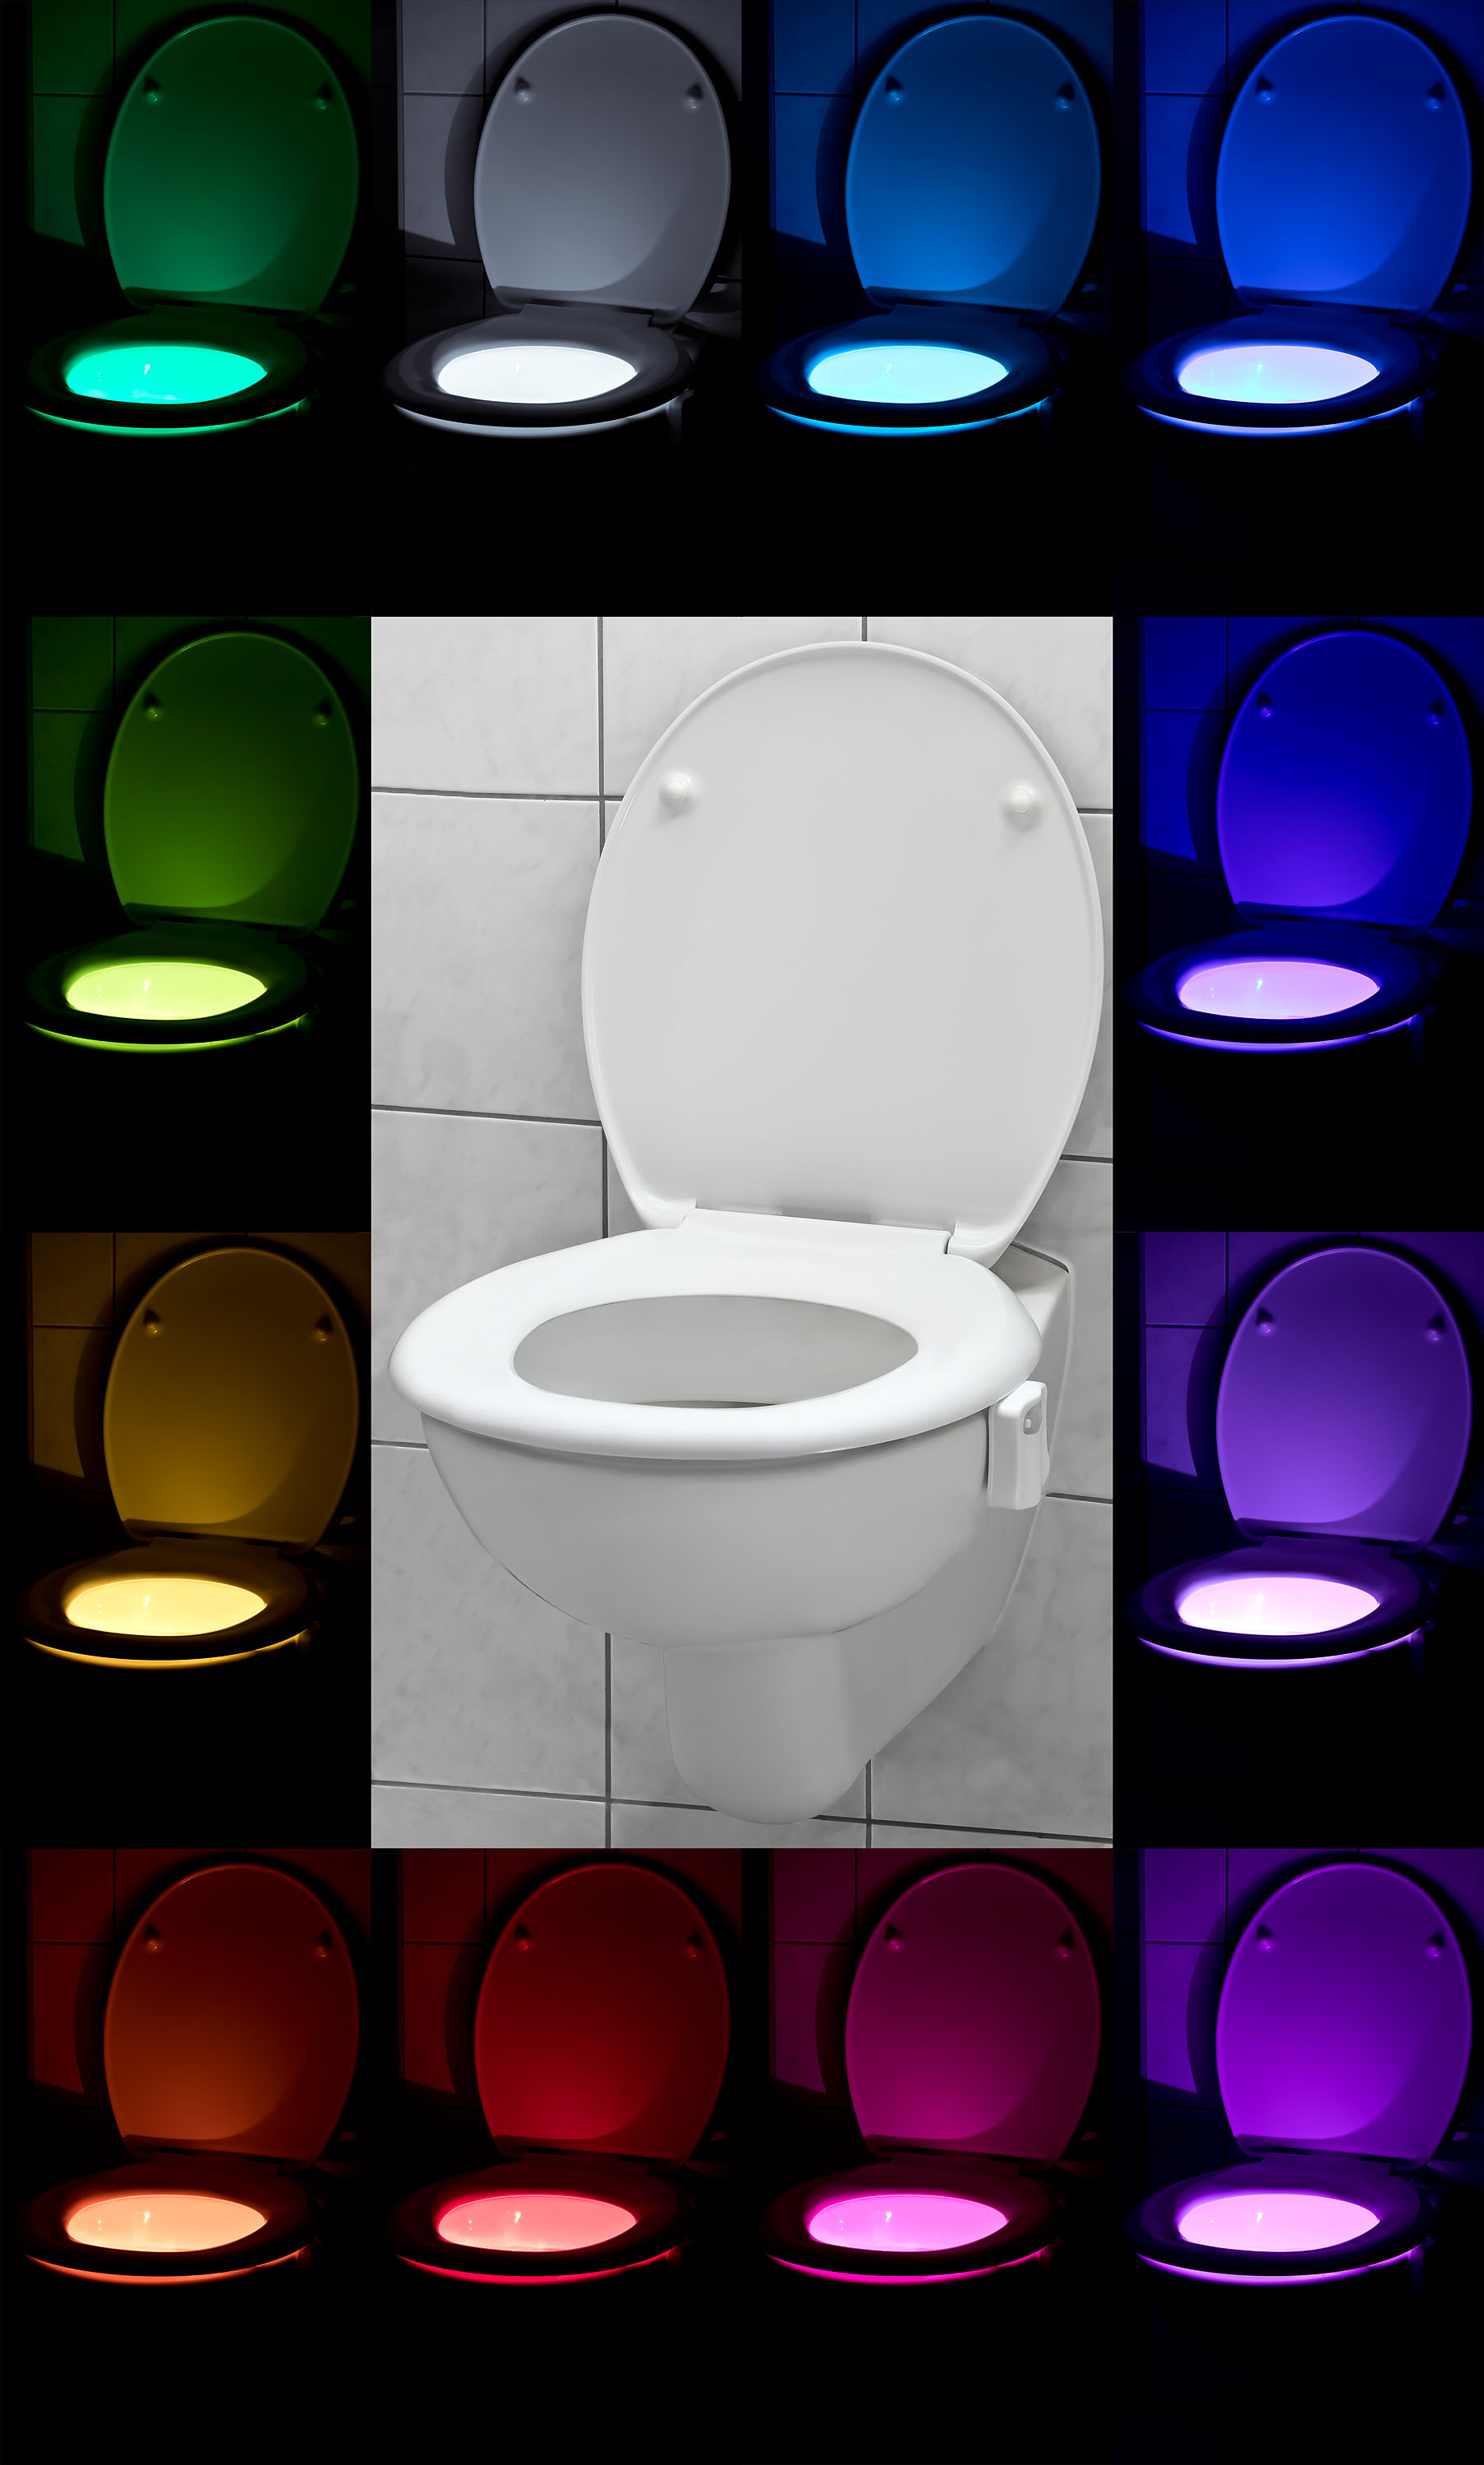 led toiletten licht - klolicht – bunter wc sitz – toilet light mit